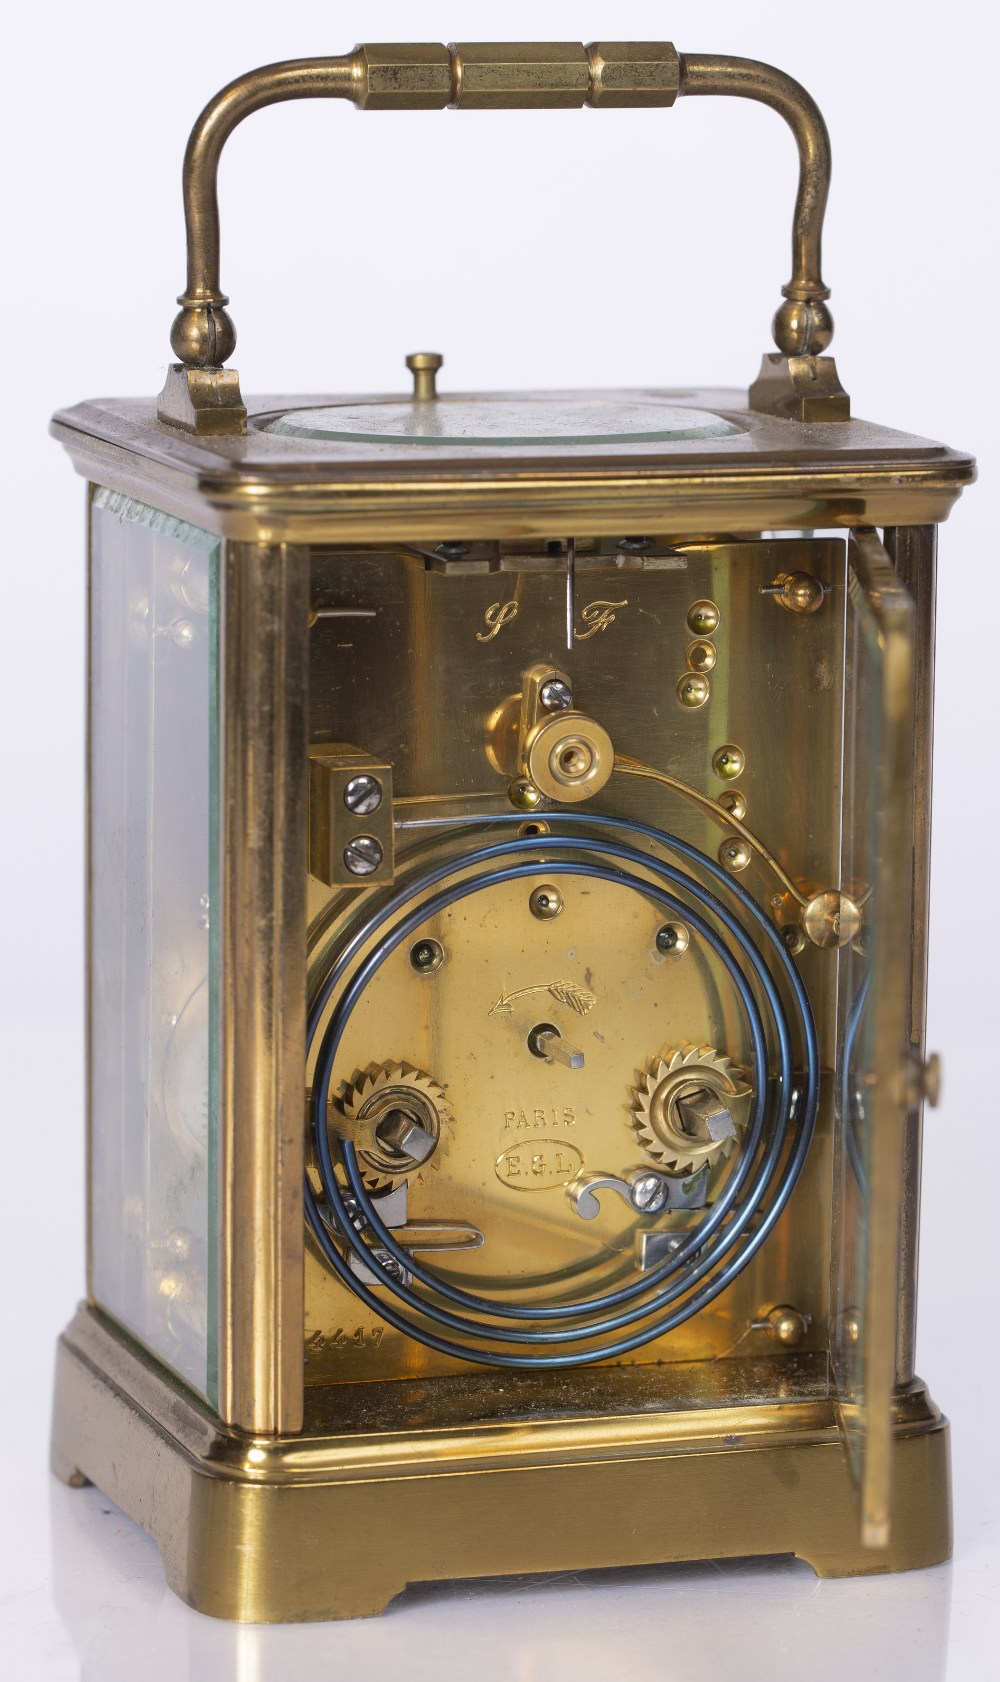 A LATE 19TH CENTURY FRENCH CARRIAGE CLOCK with white enamel Roman dial, silvered platform lever - Image 2 of 3